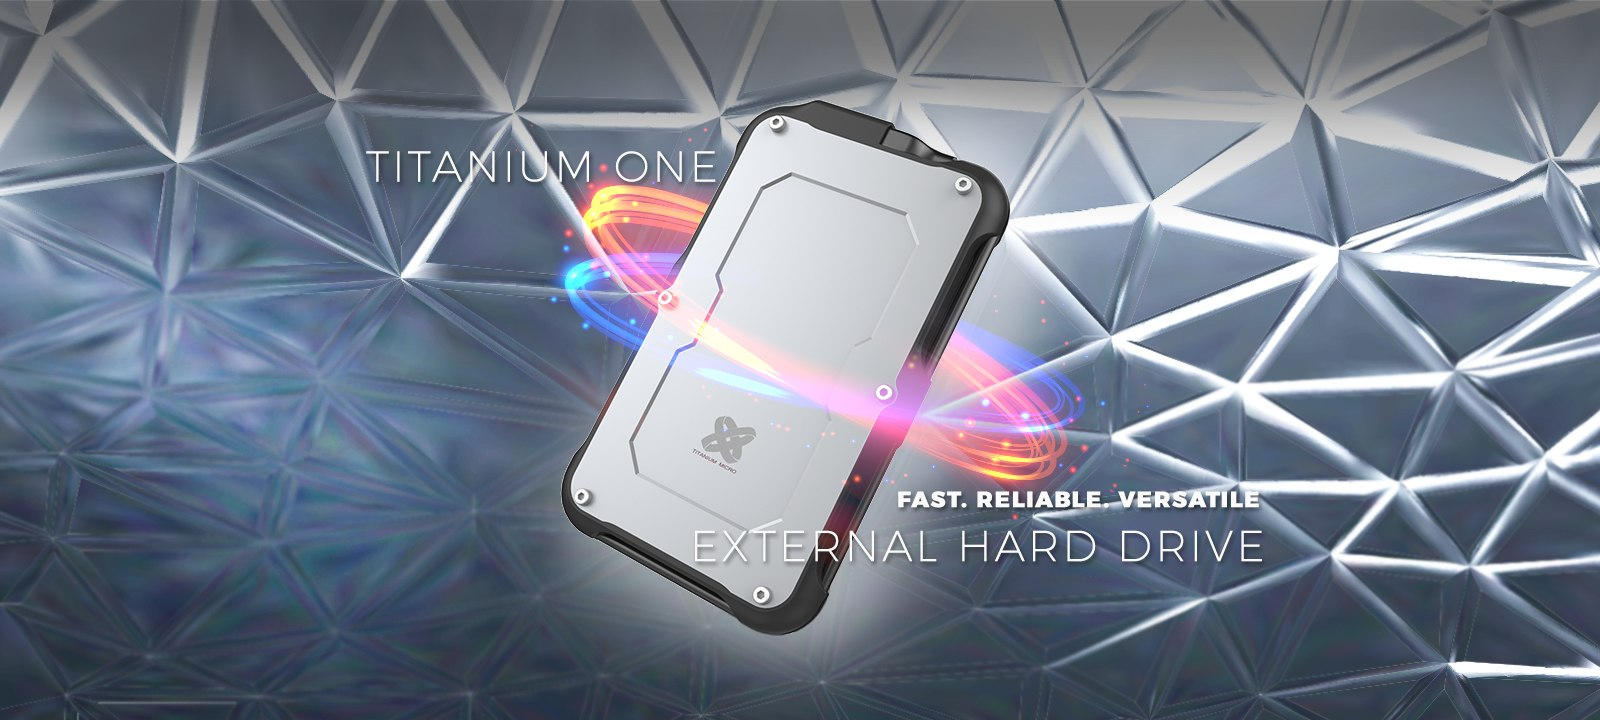 rugged Titanium One external solid state drive